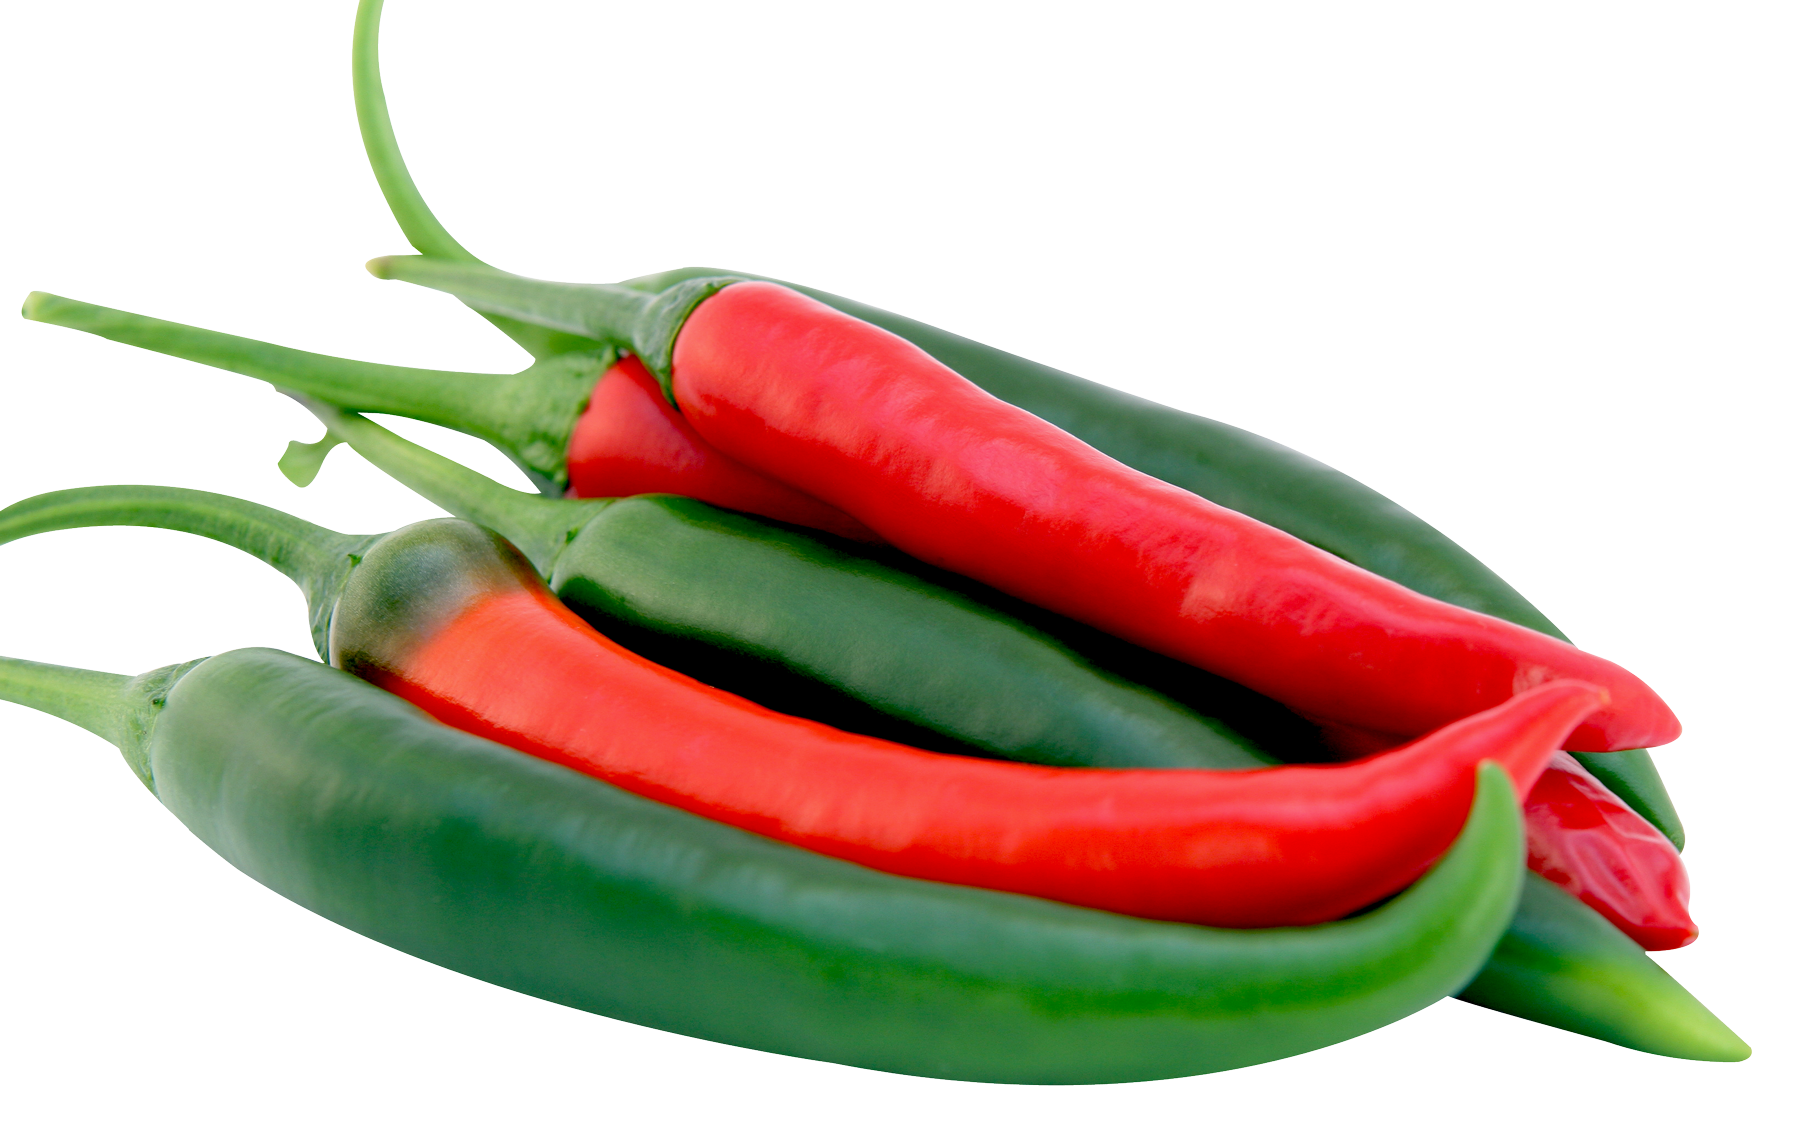 Bananas peppers png. Red and green banana